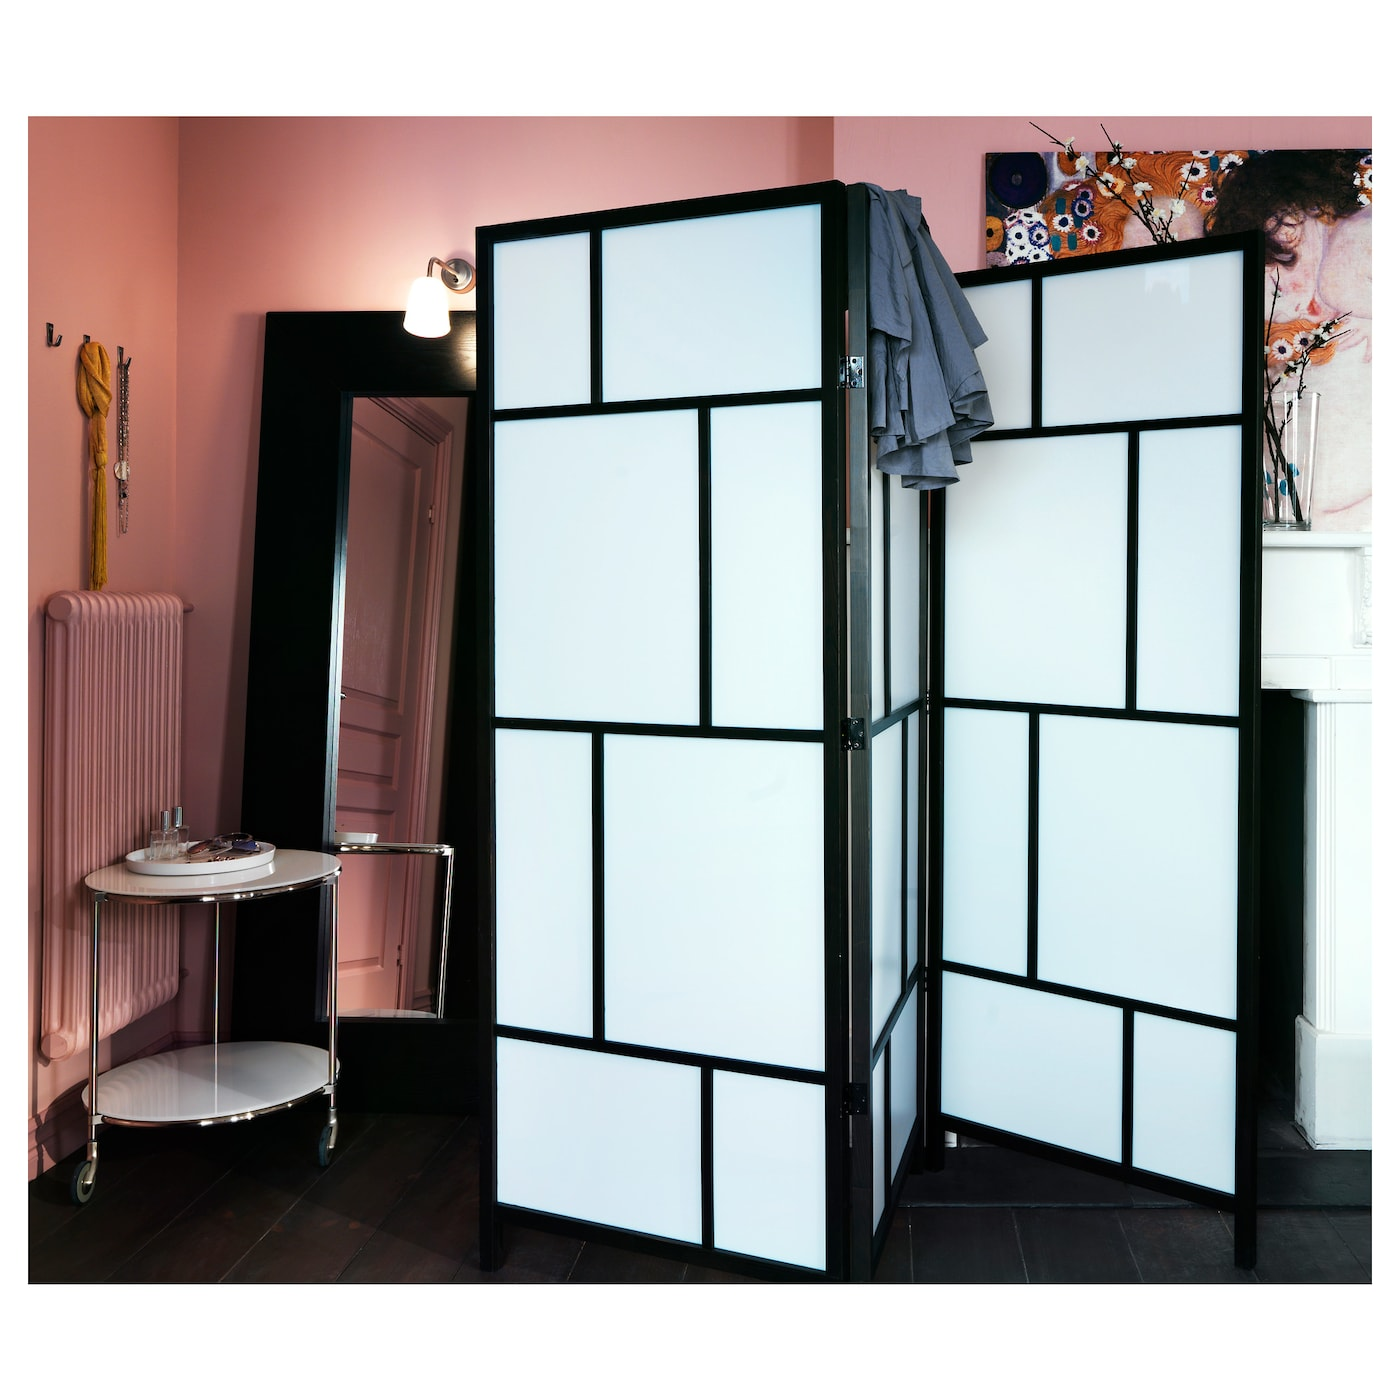 ris r paravent blanc noir 216x185 cm ikea. Black Bedroom Furniture Sets. Home Design Ideas